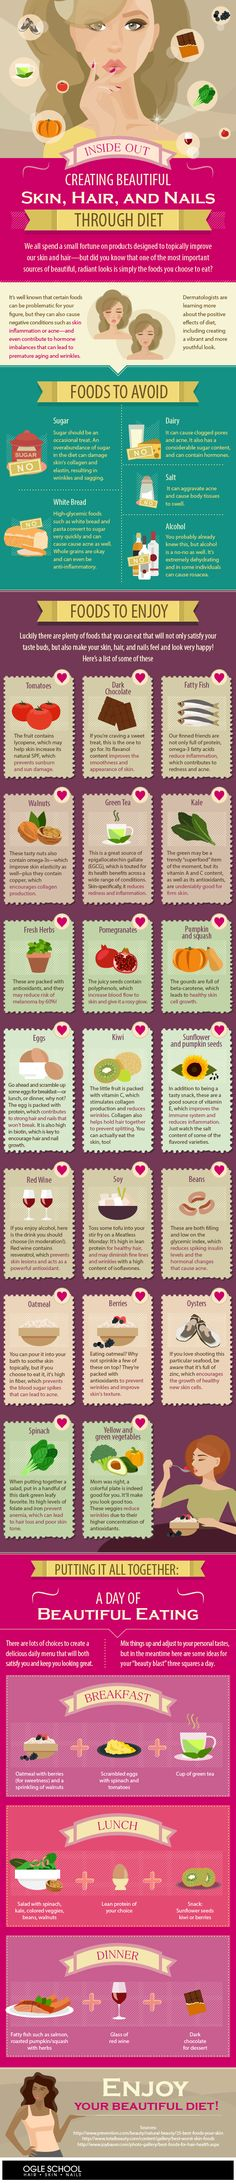 Inside Out: Creating Beautiful Skin, Hair, and Nails Through Diet #Infographic #Beauty #Diet #Food